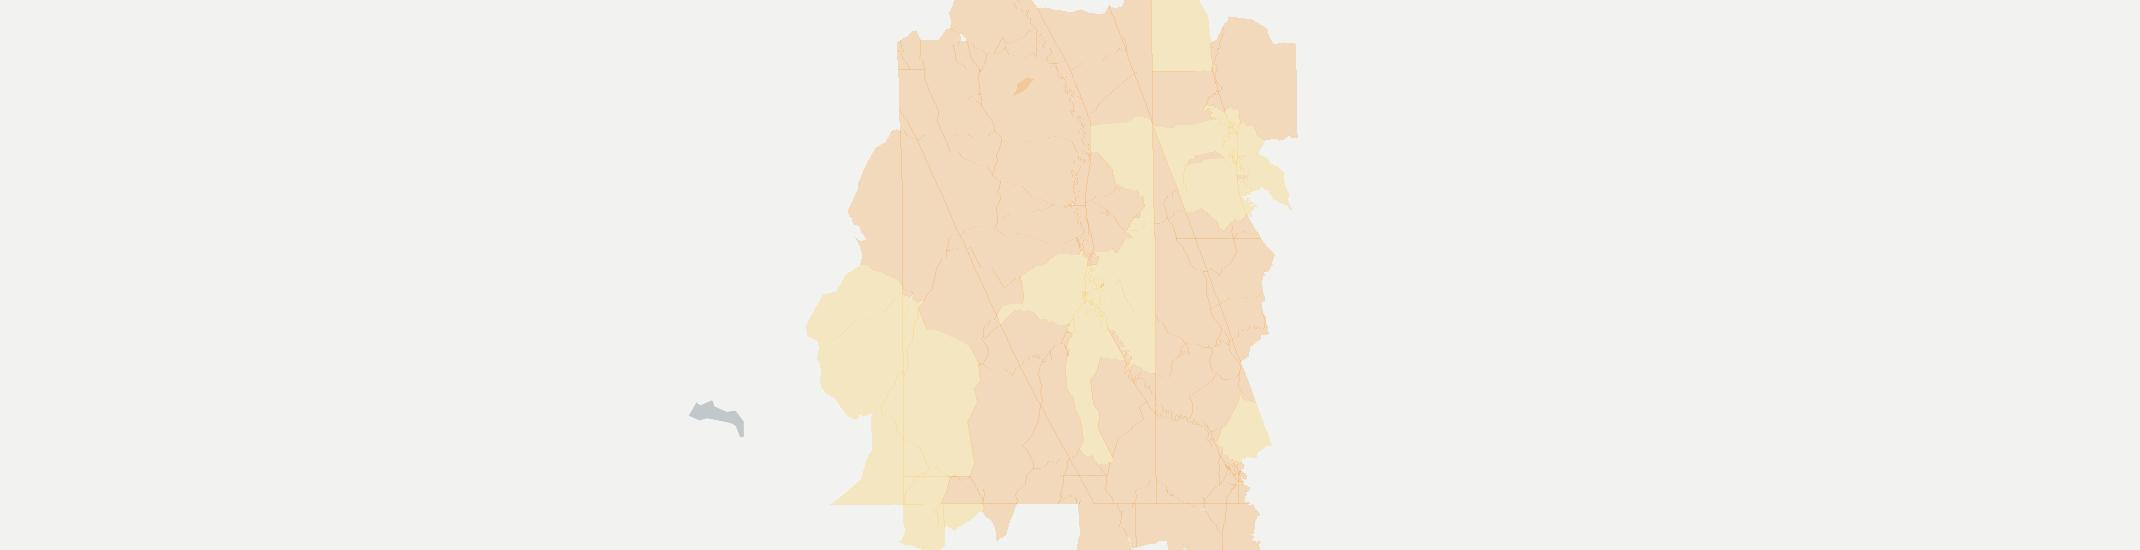 Manderson Internet Competition Map. Click for interactive map.